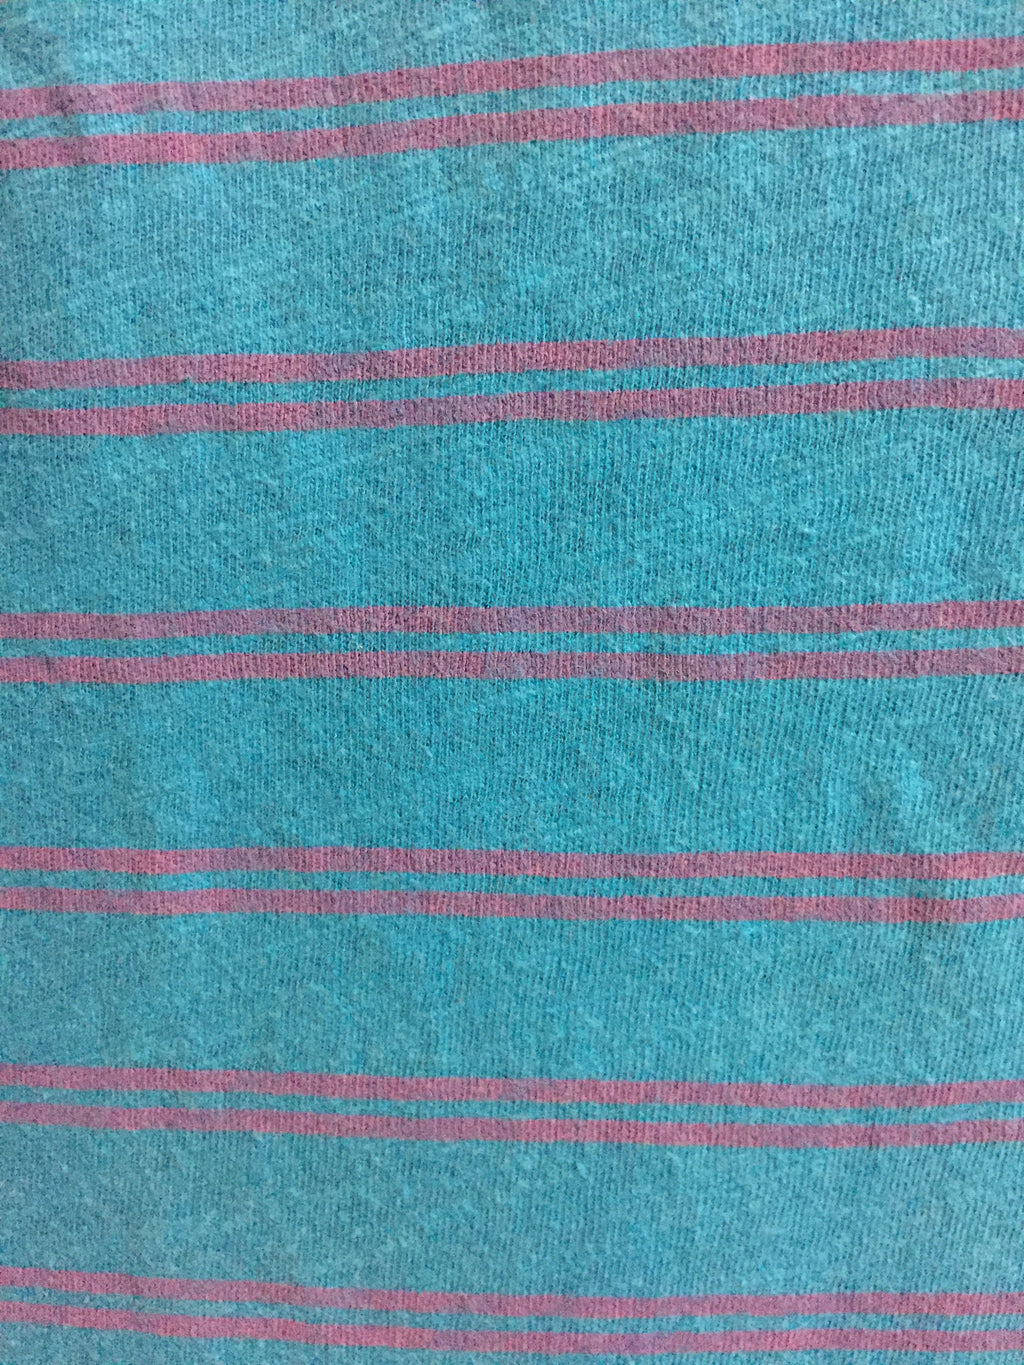 Blue Stripes Racer Back Top - #FTFY - For The Fun Years